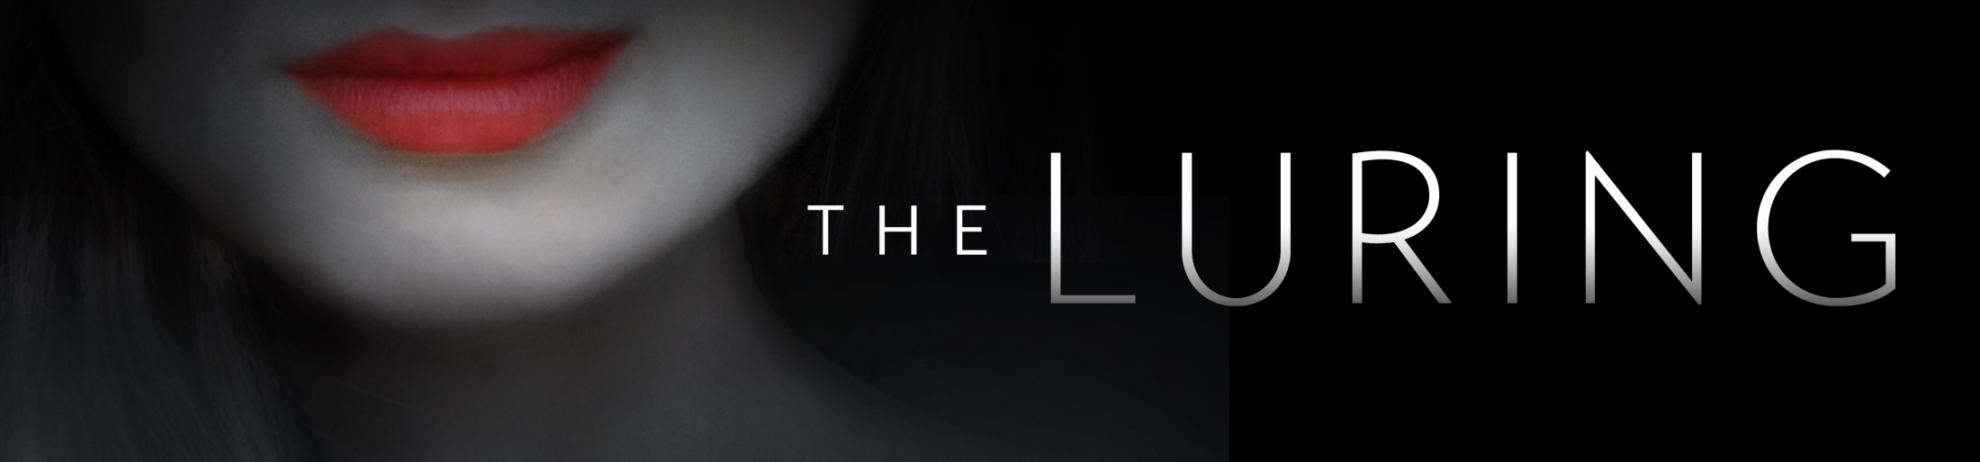 Luring, The – Summer Hill Films